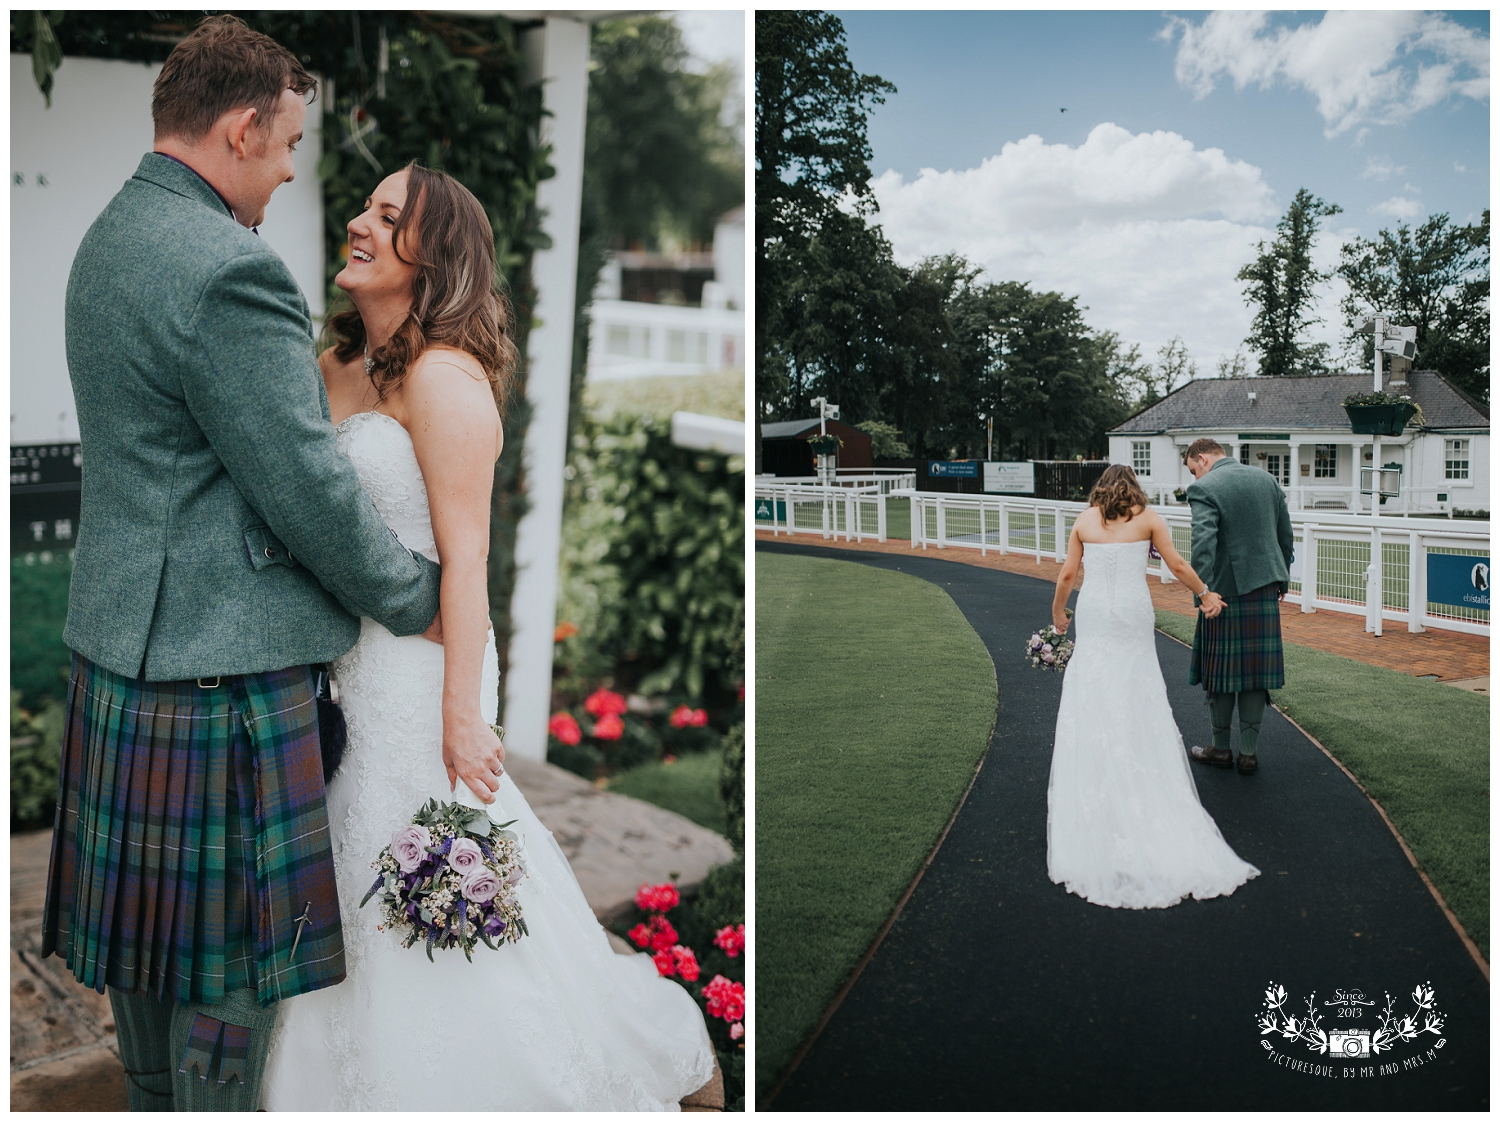 Hamilton Park Racecourse  wedding photography, Picturesque by Mr and Mrs M_0052.jpg